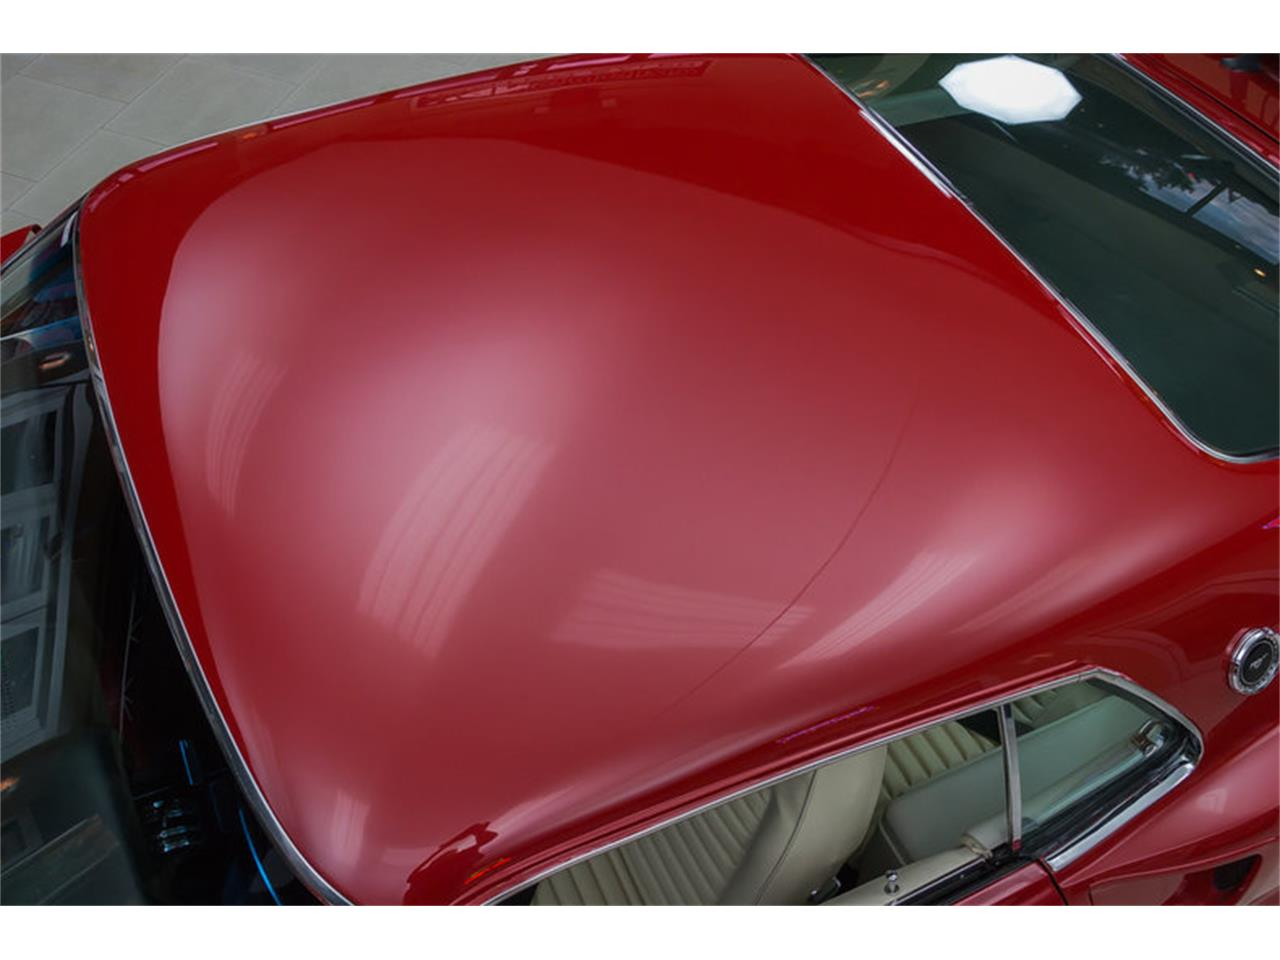 Large Picture of '69 Ford Mustang Mach 1 S Code - $59,900.00 Offered by Vanguard Motor Sales - IS3G